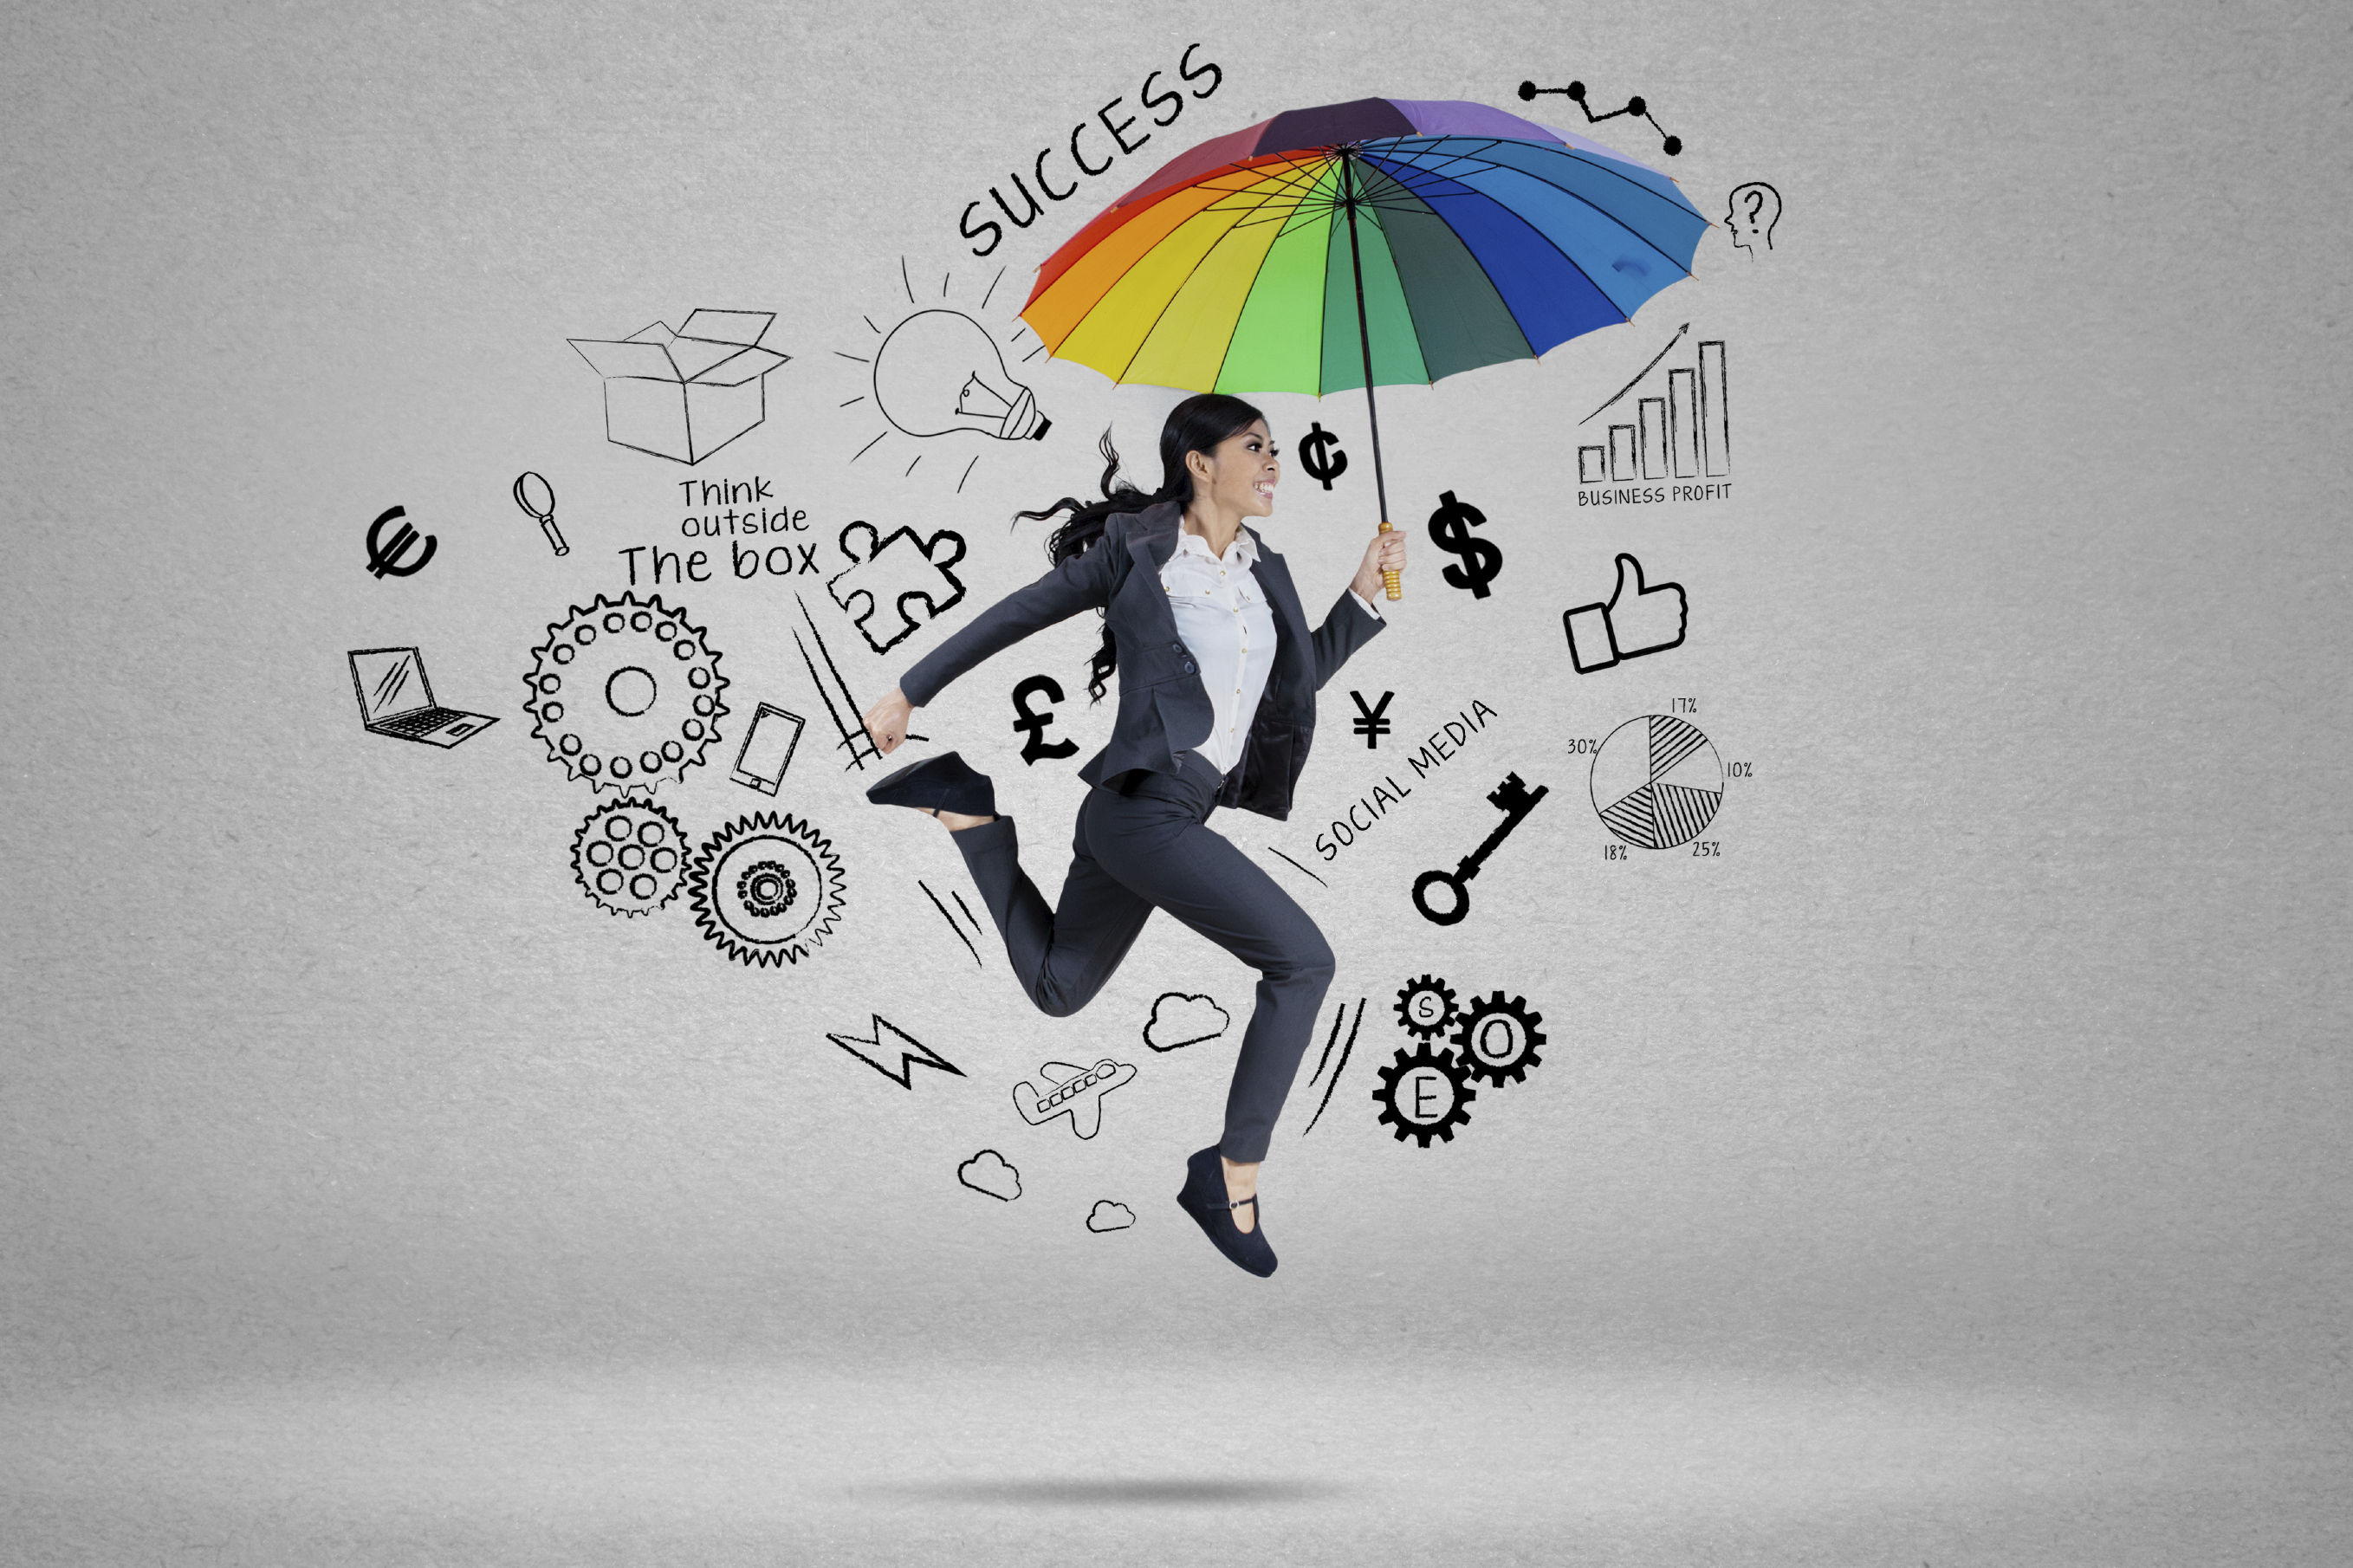 an employee happy about organizational culture